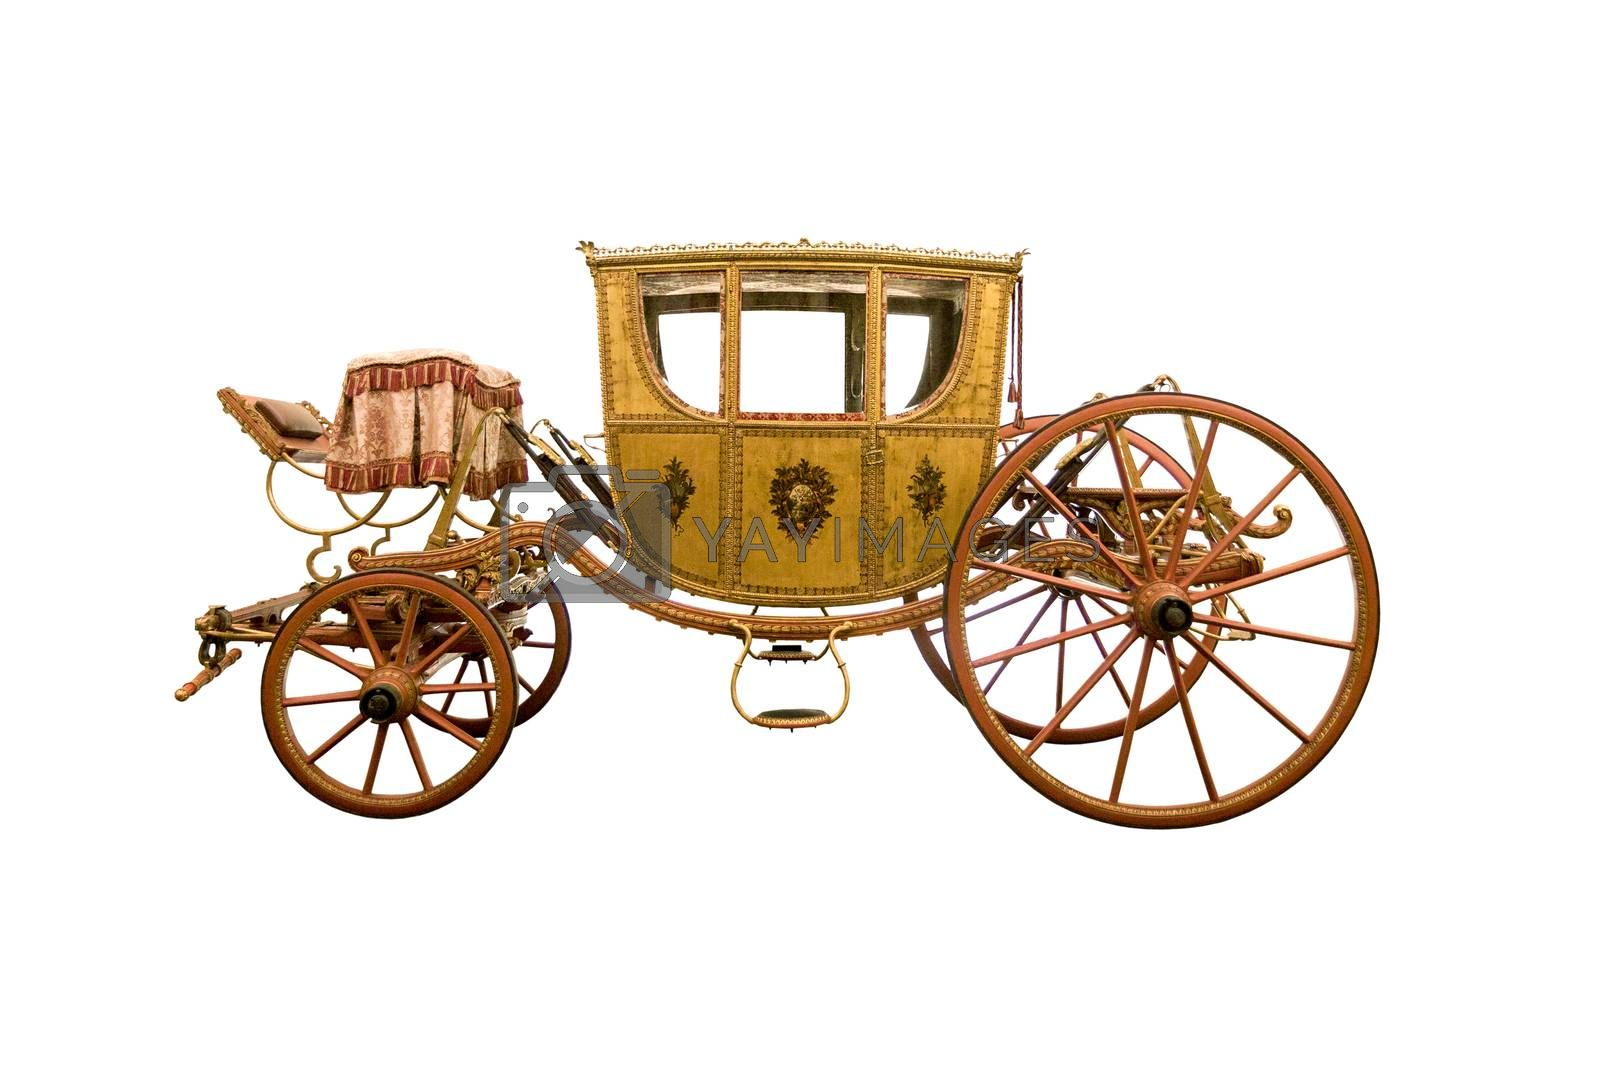 Vintage four-wheel horse drawn carriage isolated on white background